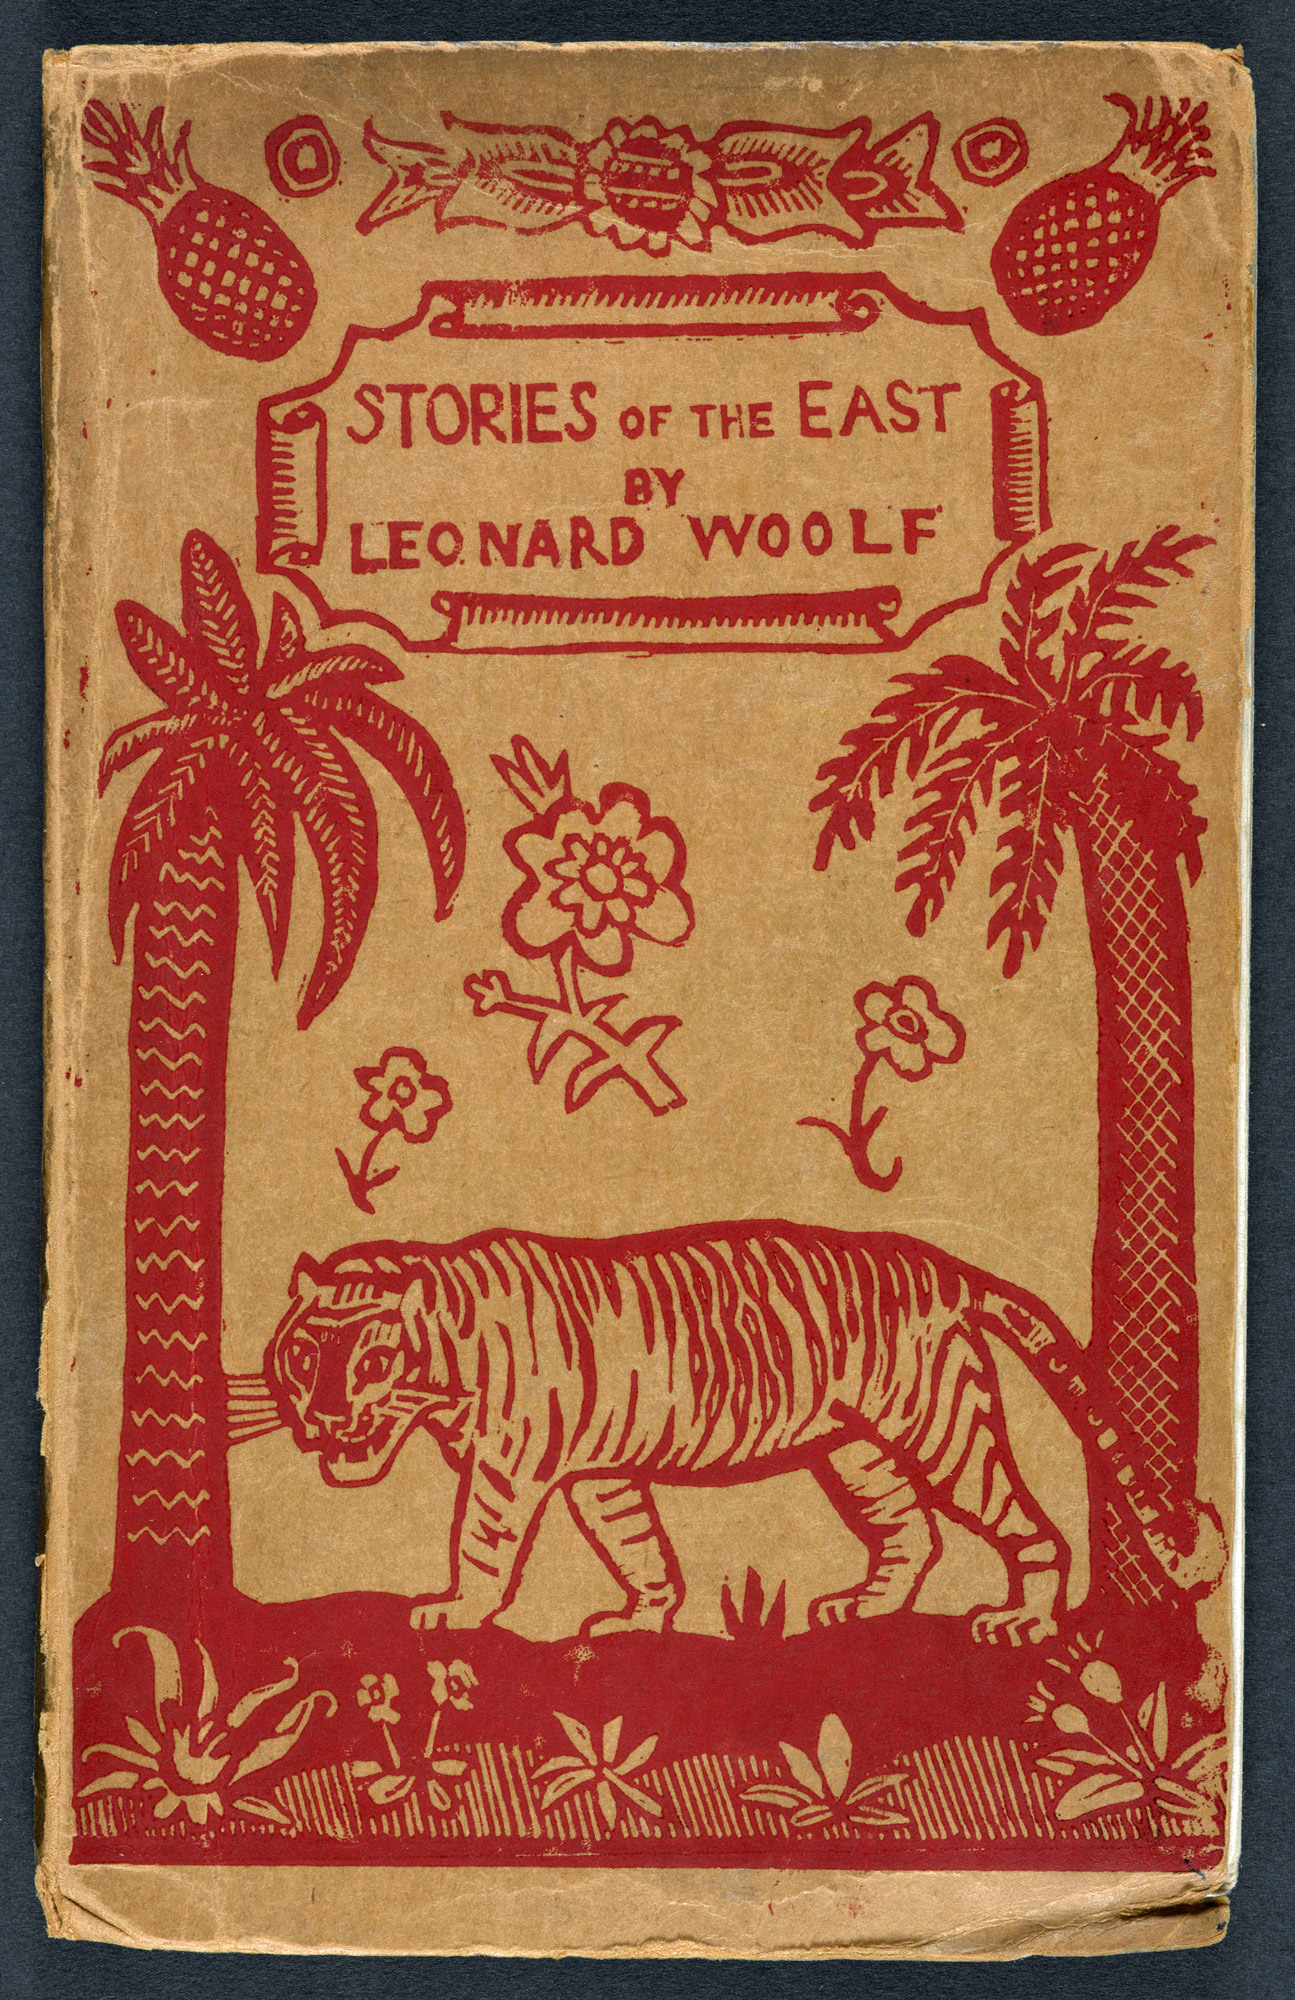 Stories of the East by Leonard Woolf, with design by Dora Carrington